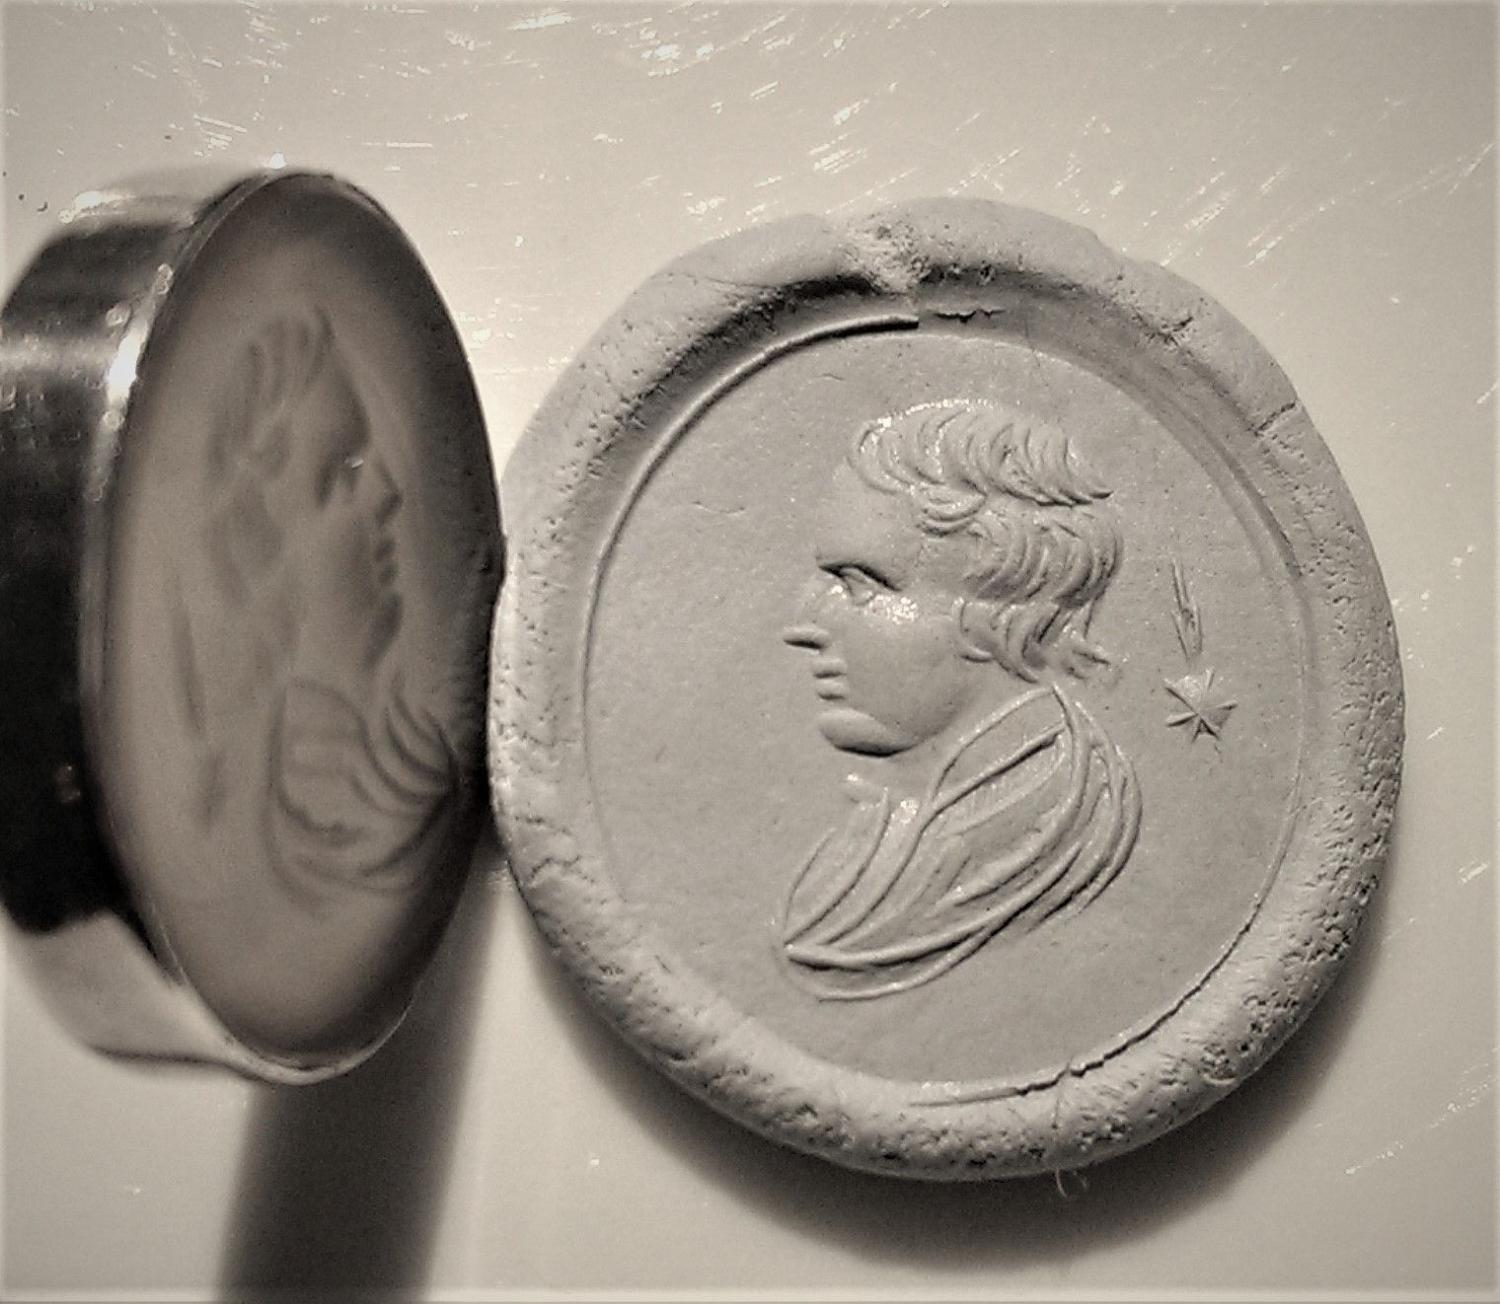 Sir Isaac Newton, White Agate Intaglio Ring, Late 18th Century